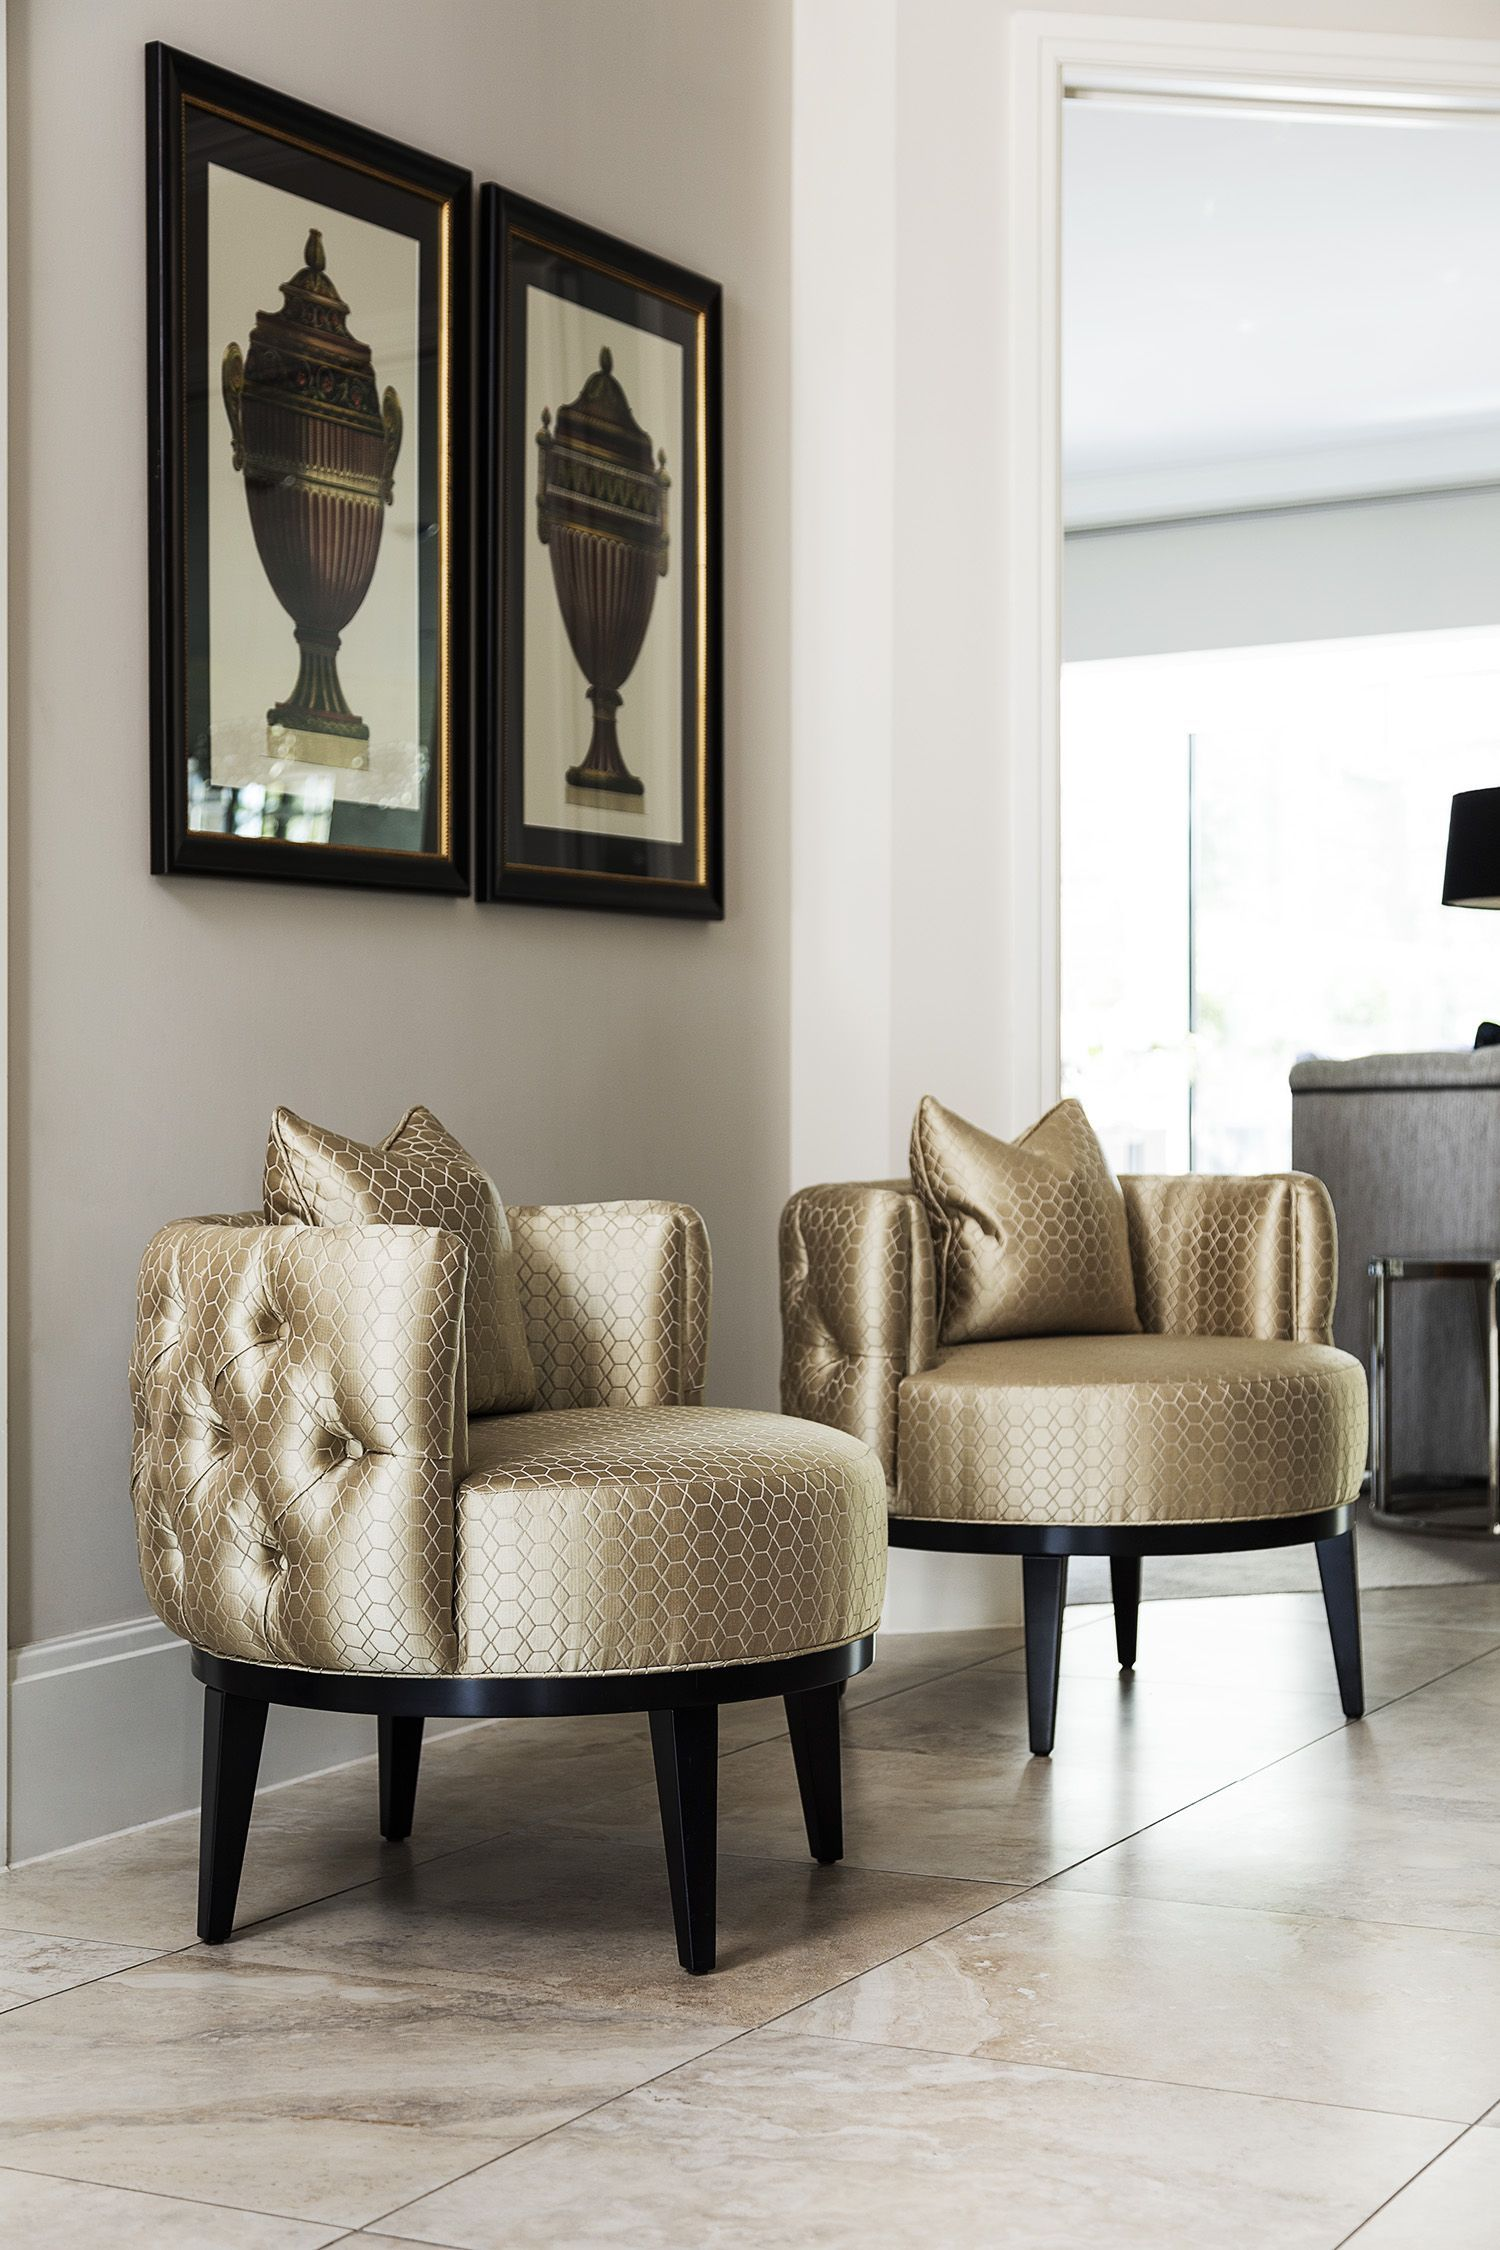 Oscar Occasional Chair An Inspirational Luxury Accent Chair That Makes An Impact In This Luxury Entrance Luxury Home Furniture Home Decor Home Decor Furniture